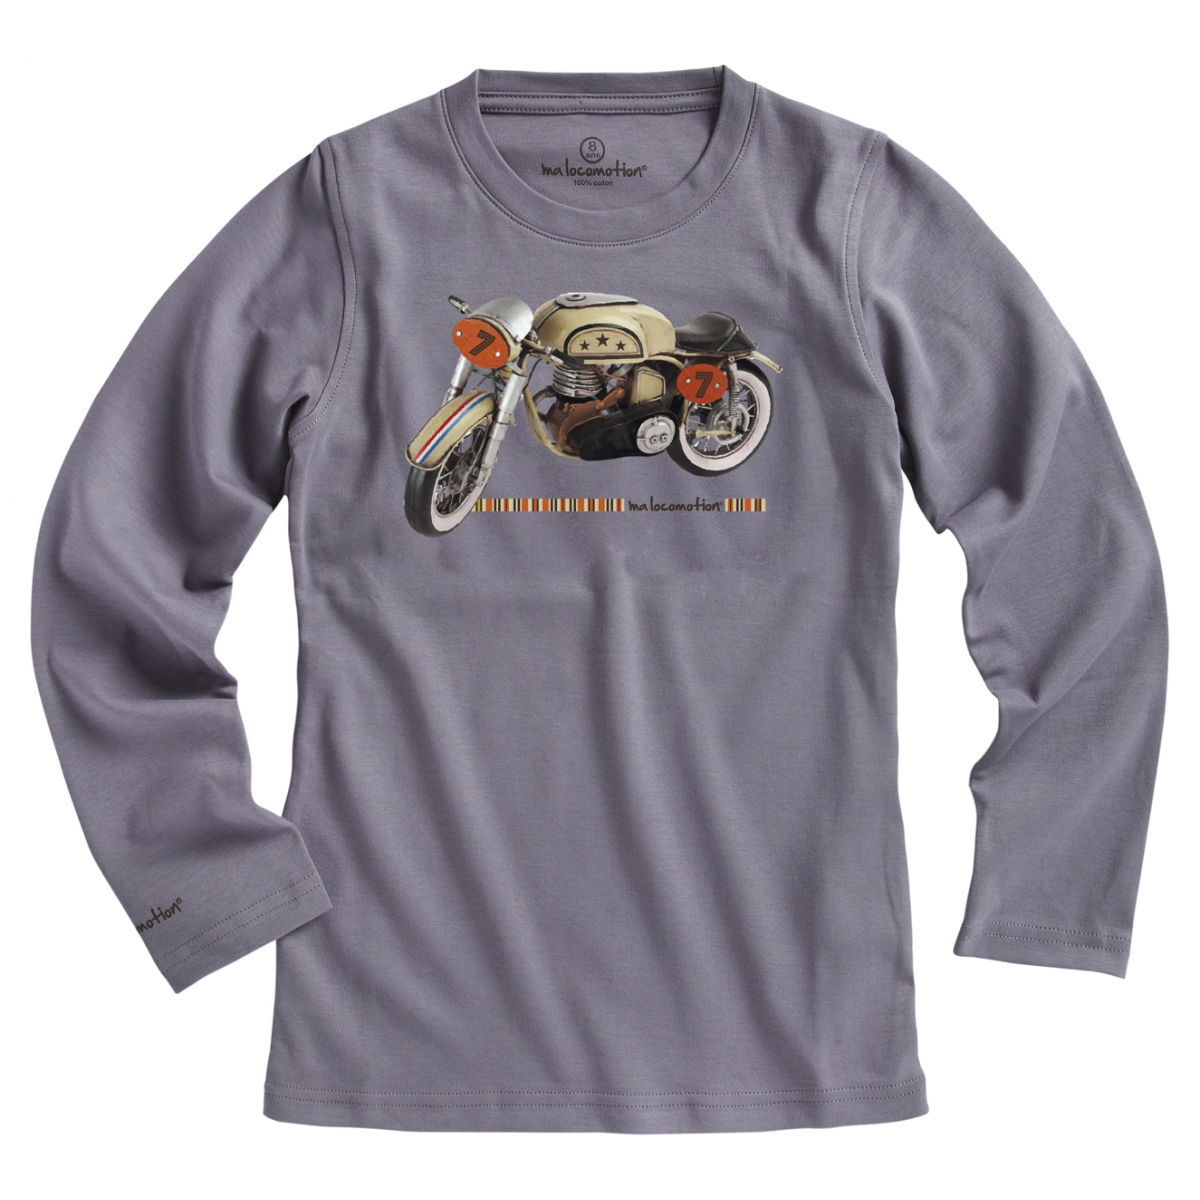 Vintage mototrcycle t-shirt - grey